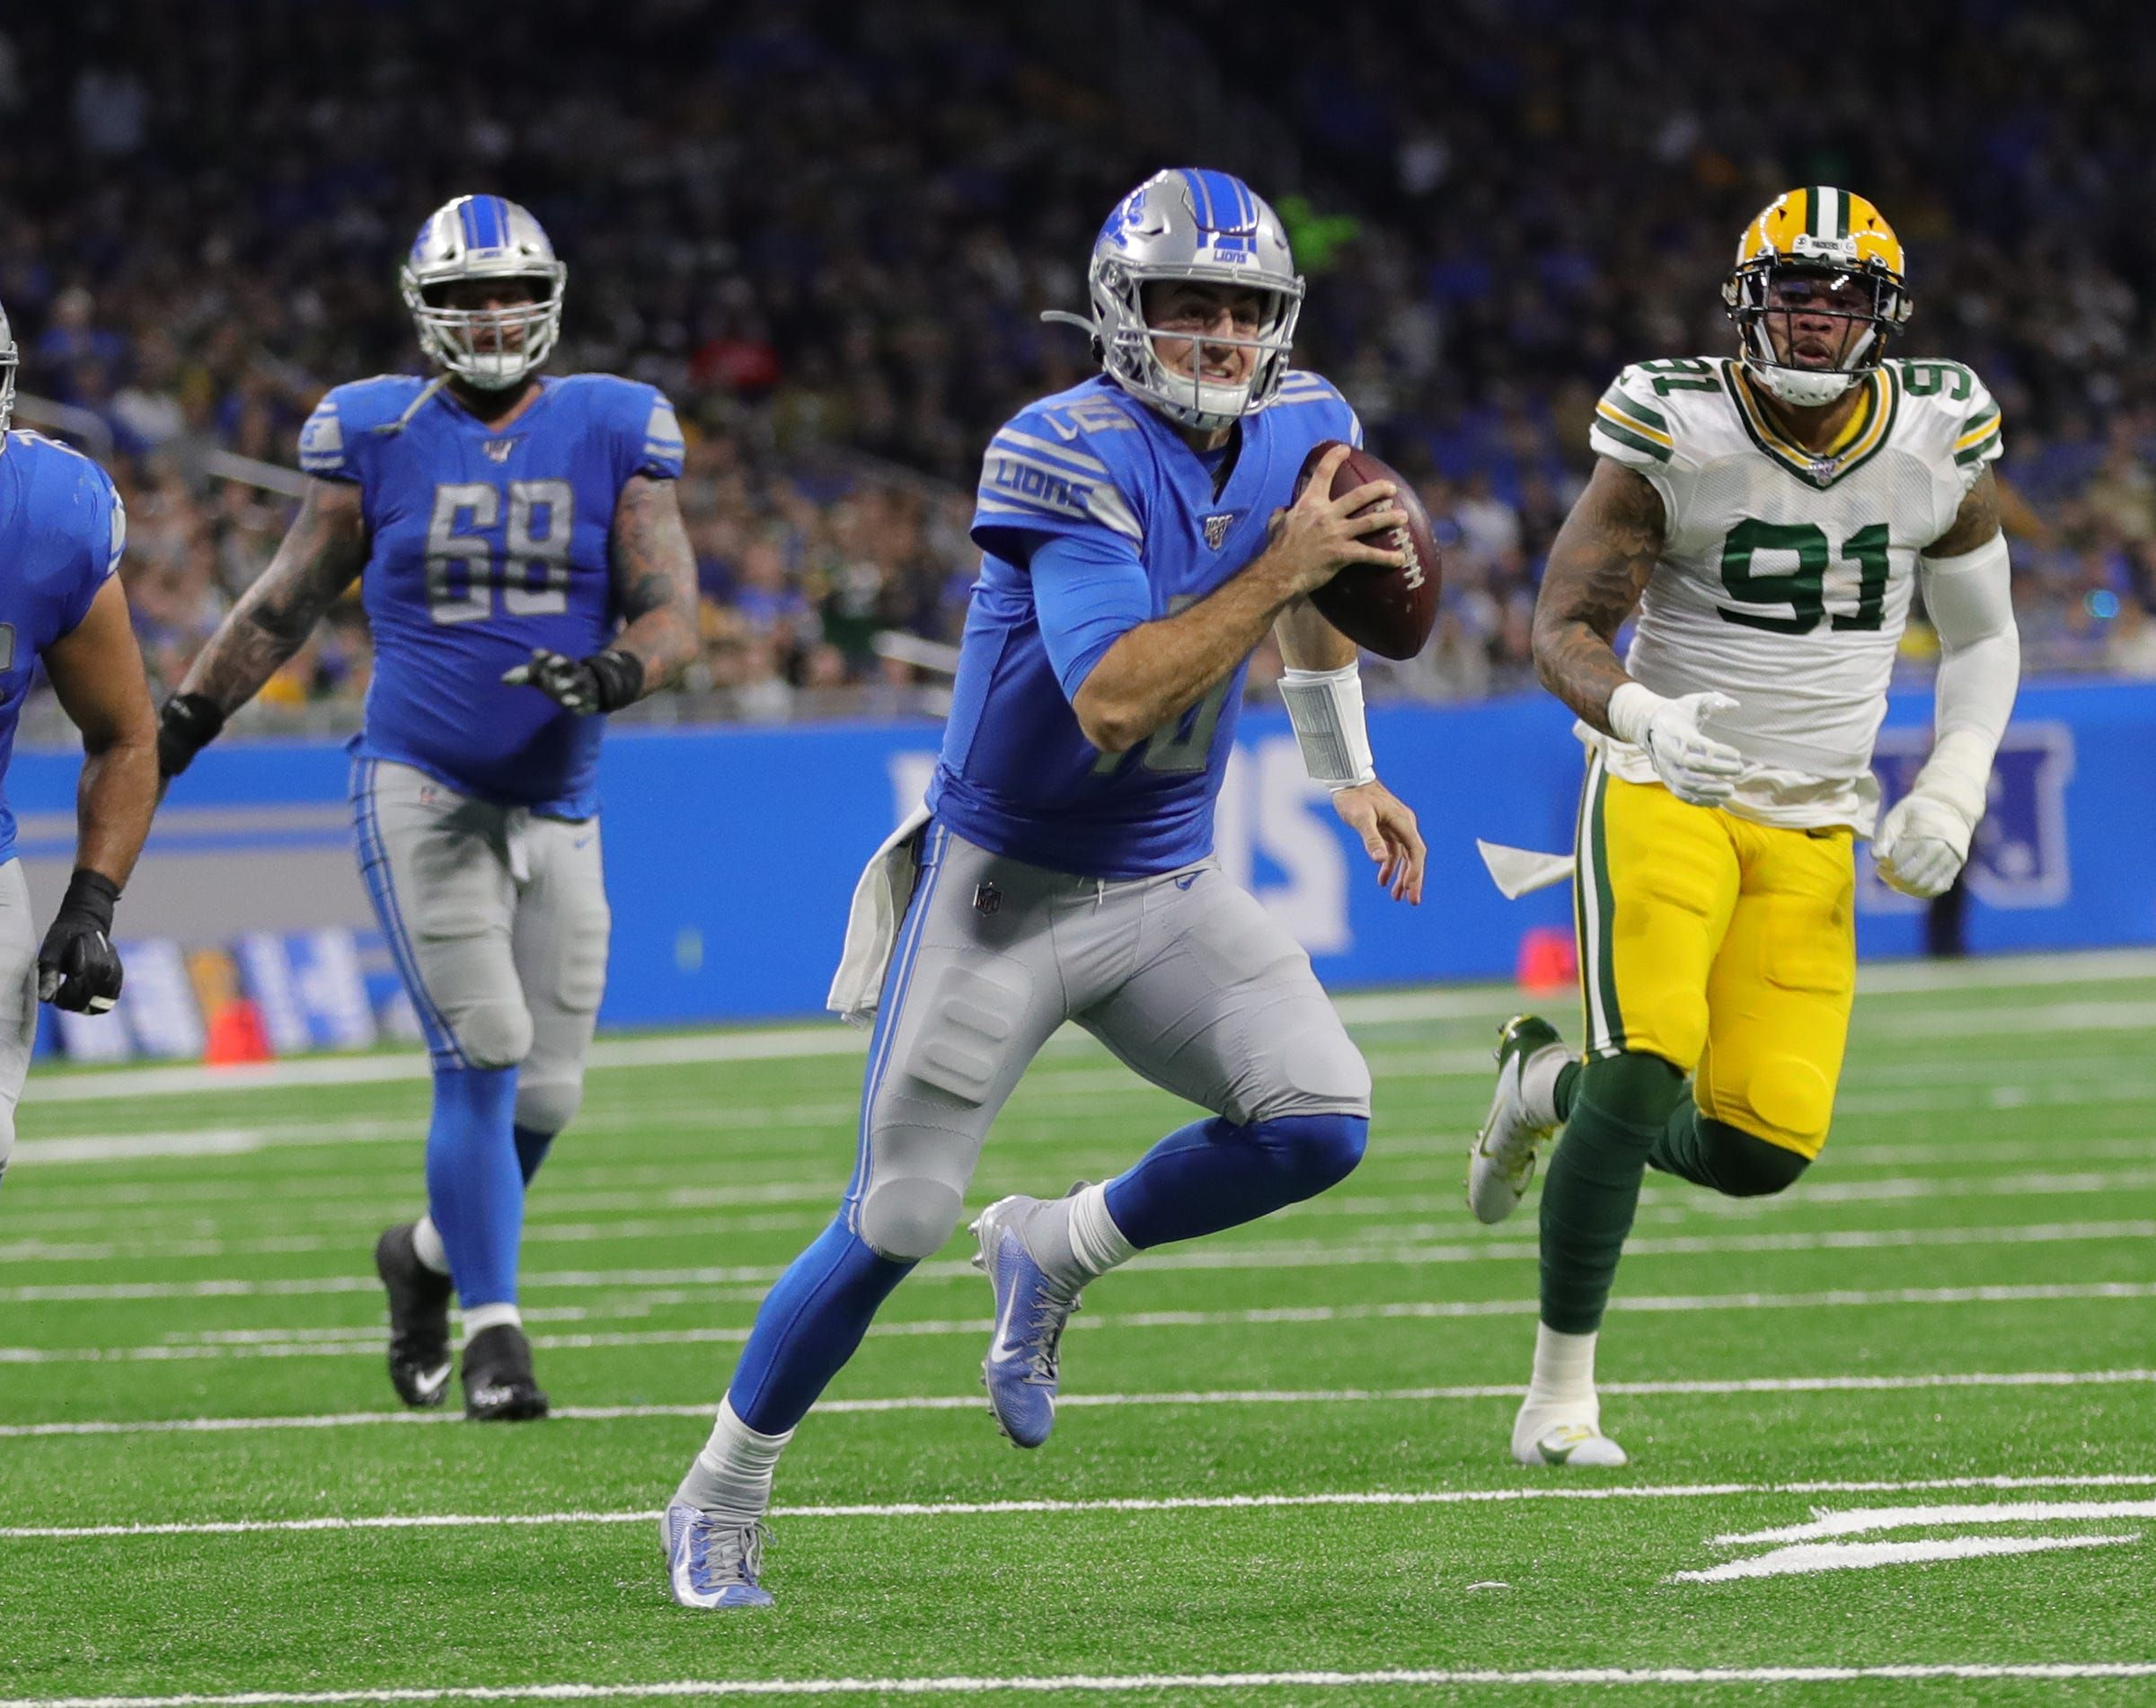 Detroit Lions blow finale to Packers, 2320, will pick 2nd